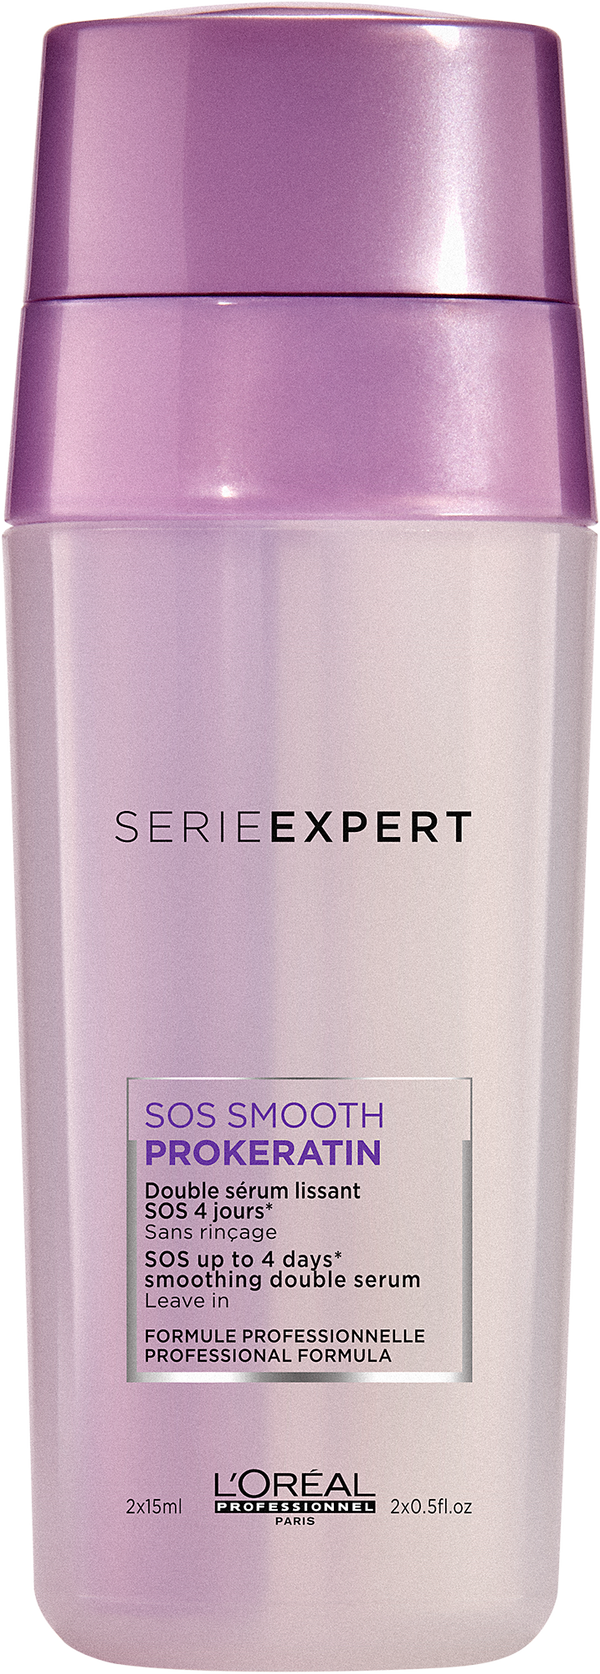 L'Oréal Professionnel Serie Expert Liss Unlimited SOS Smoothing Double Serum